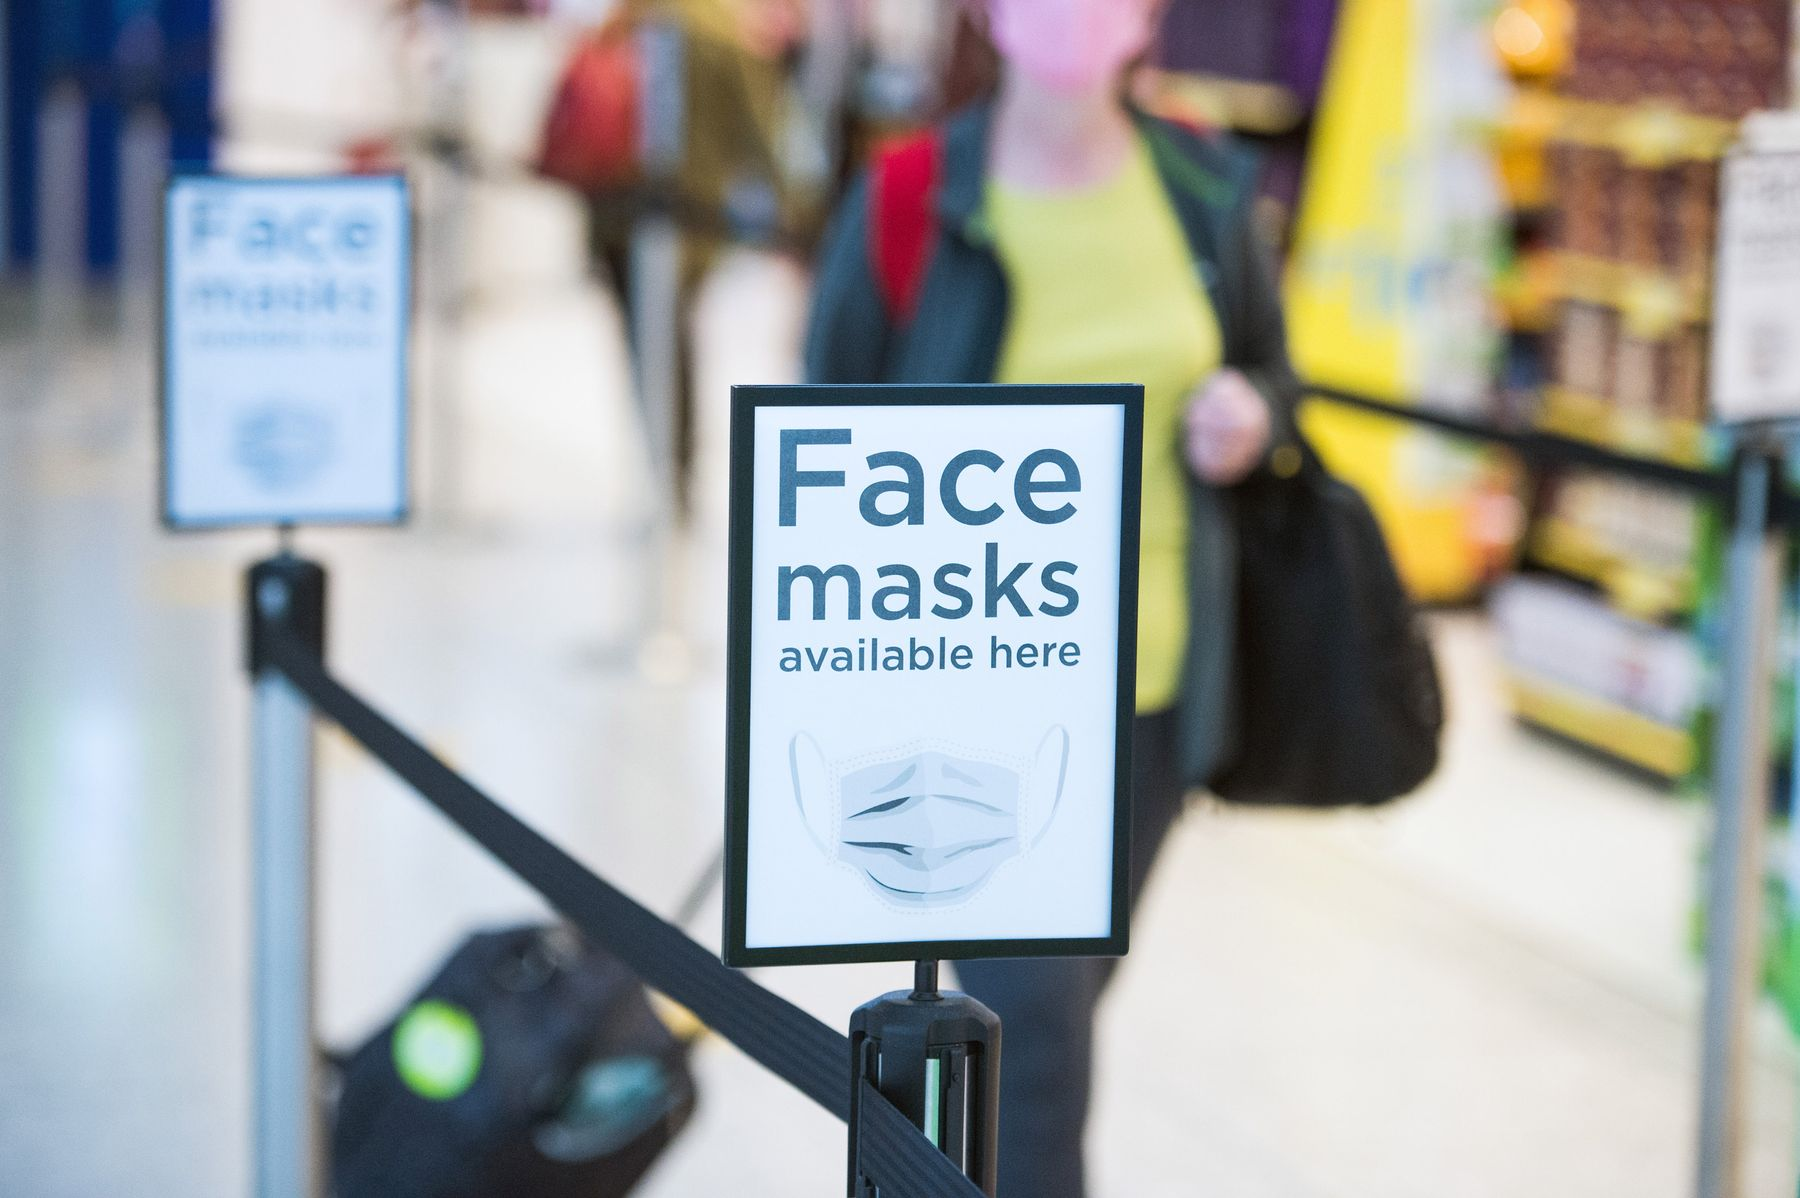 Face coverings are required at airports during coronavirus